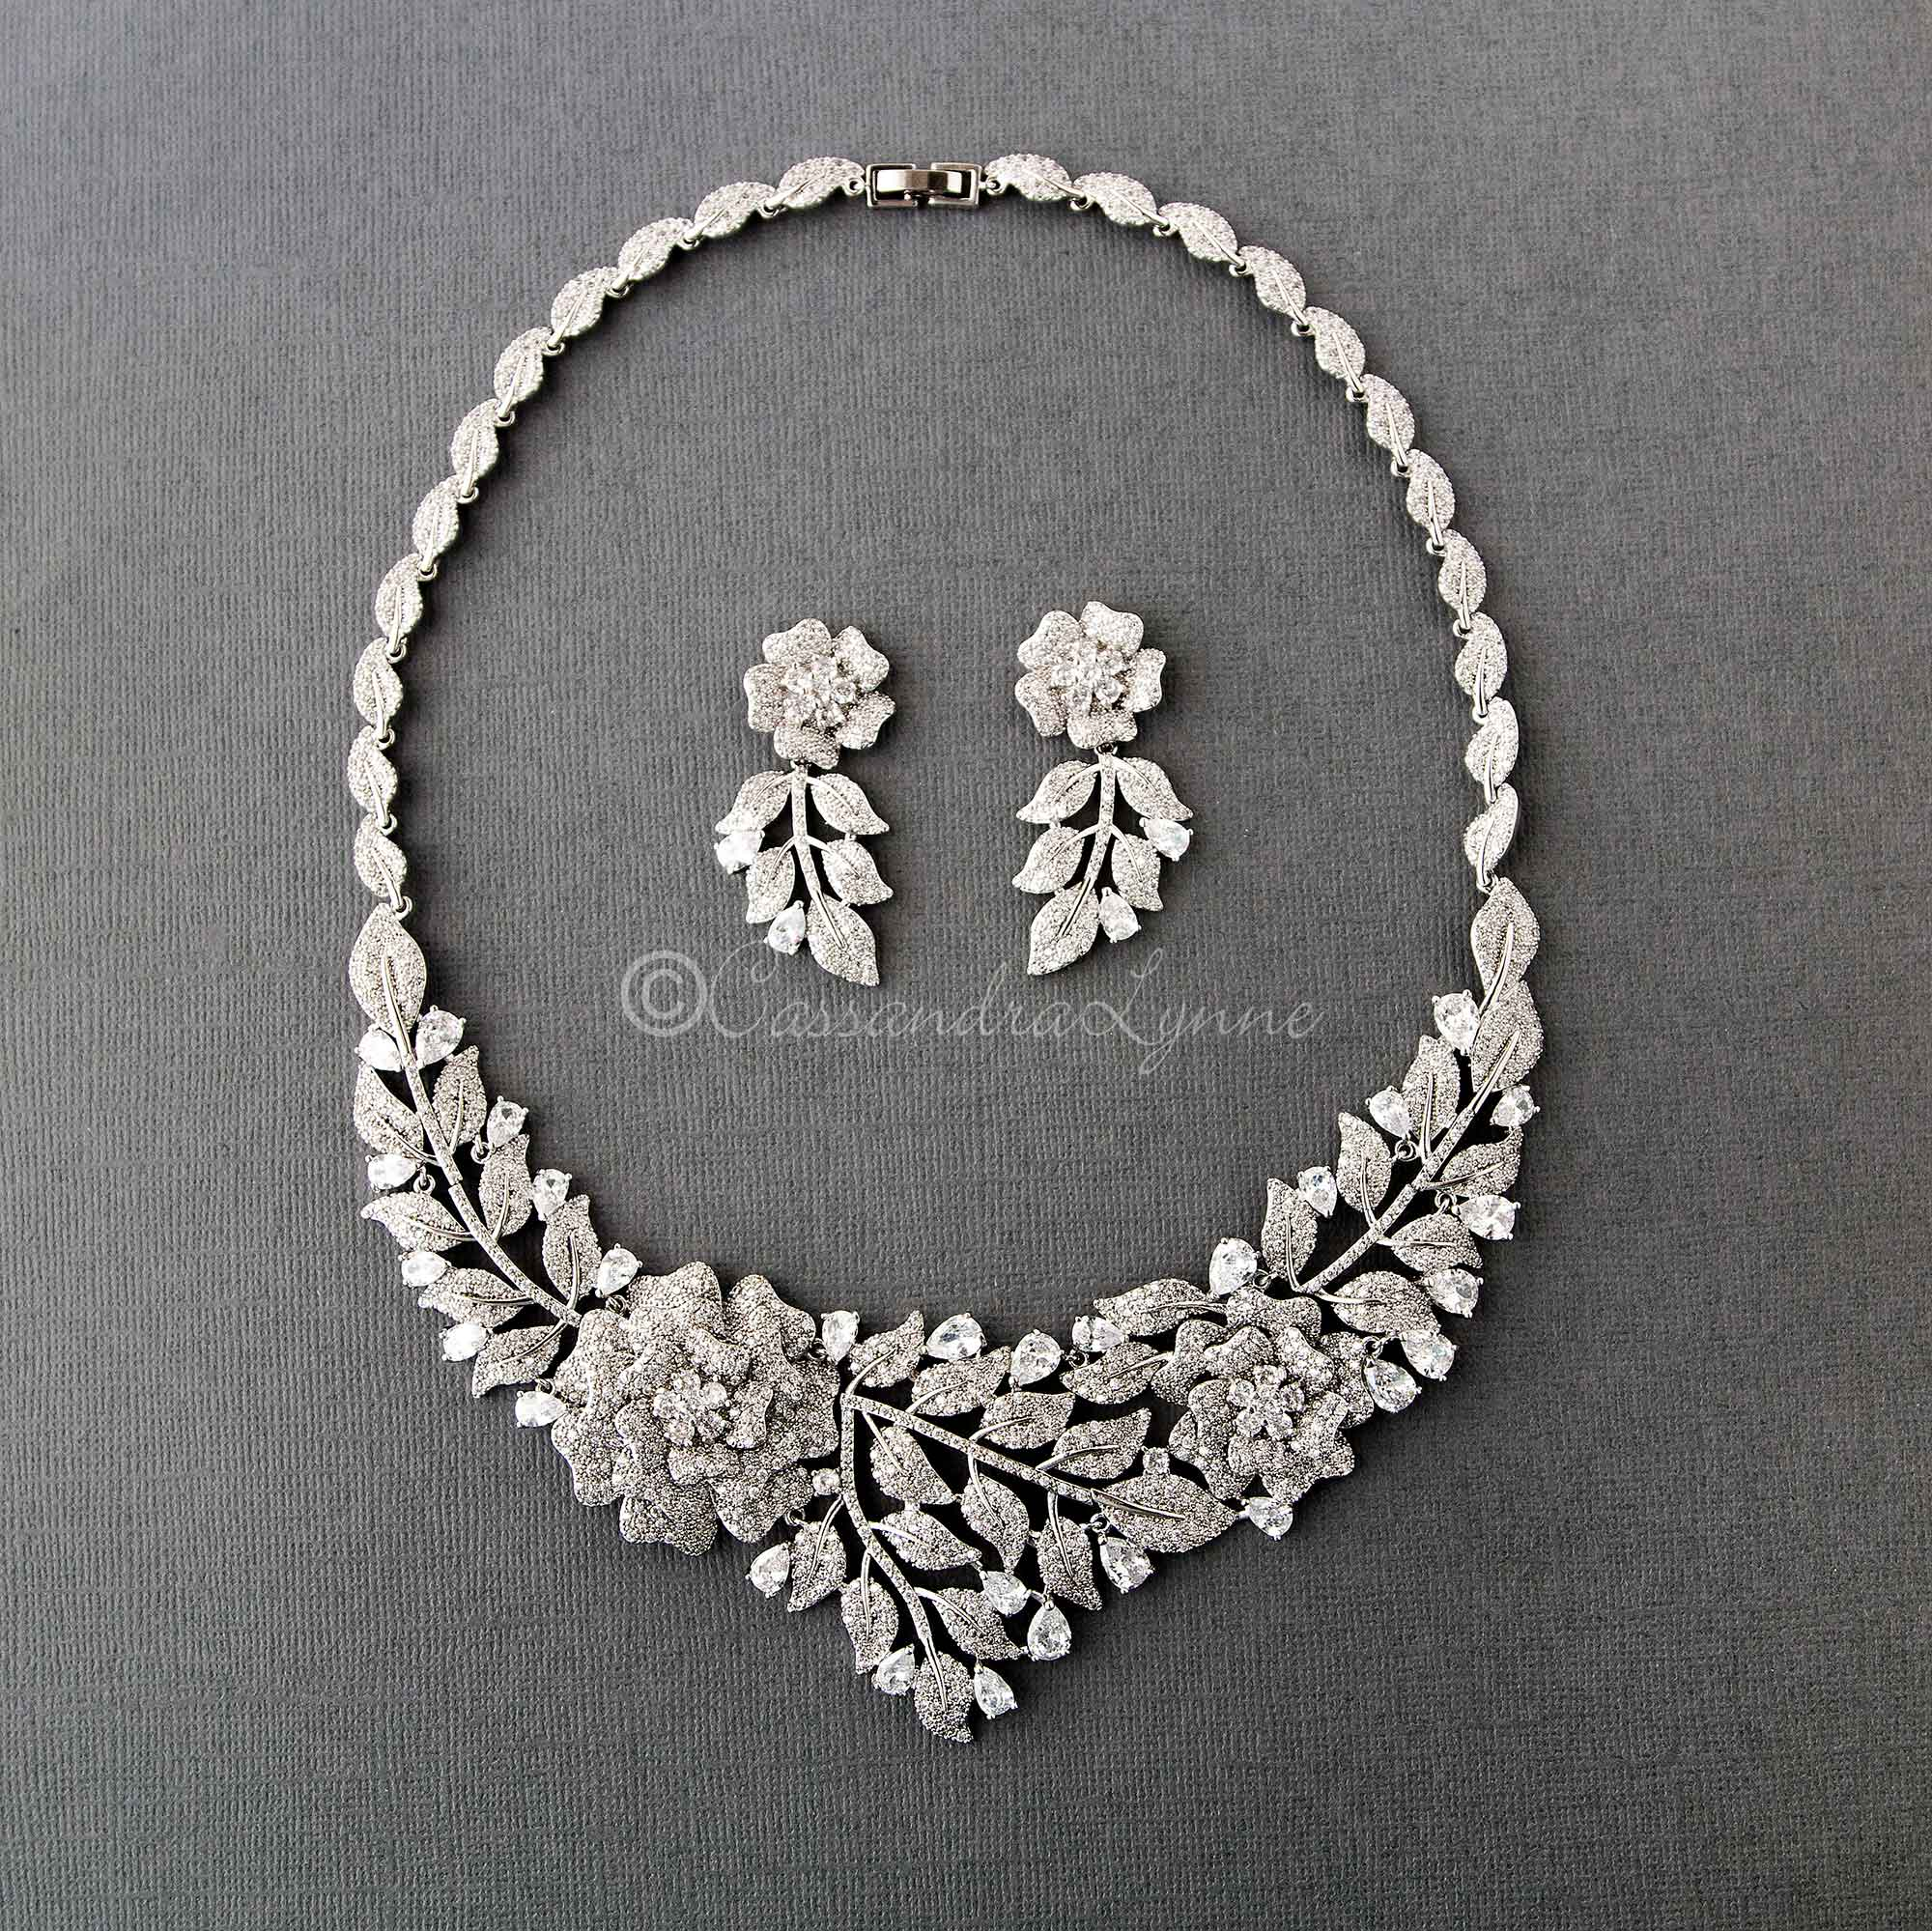 Statement Wedding Necklace of Pave Flowers and Leaves